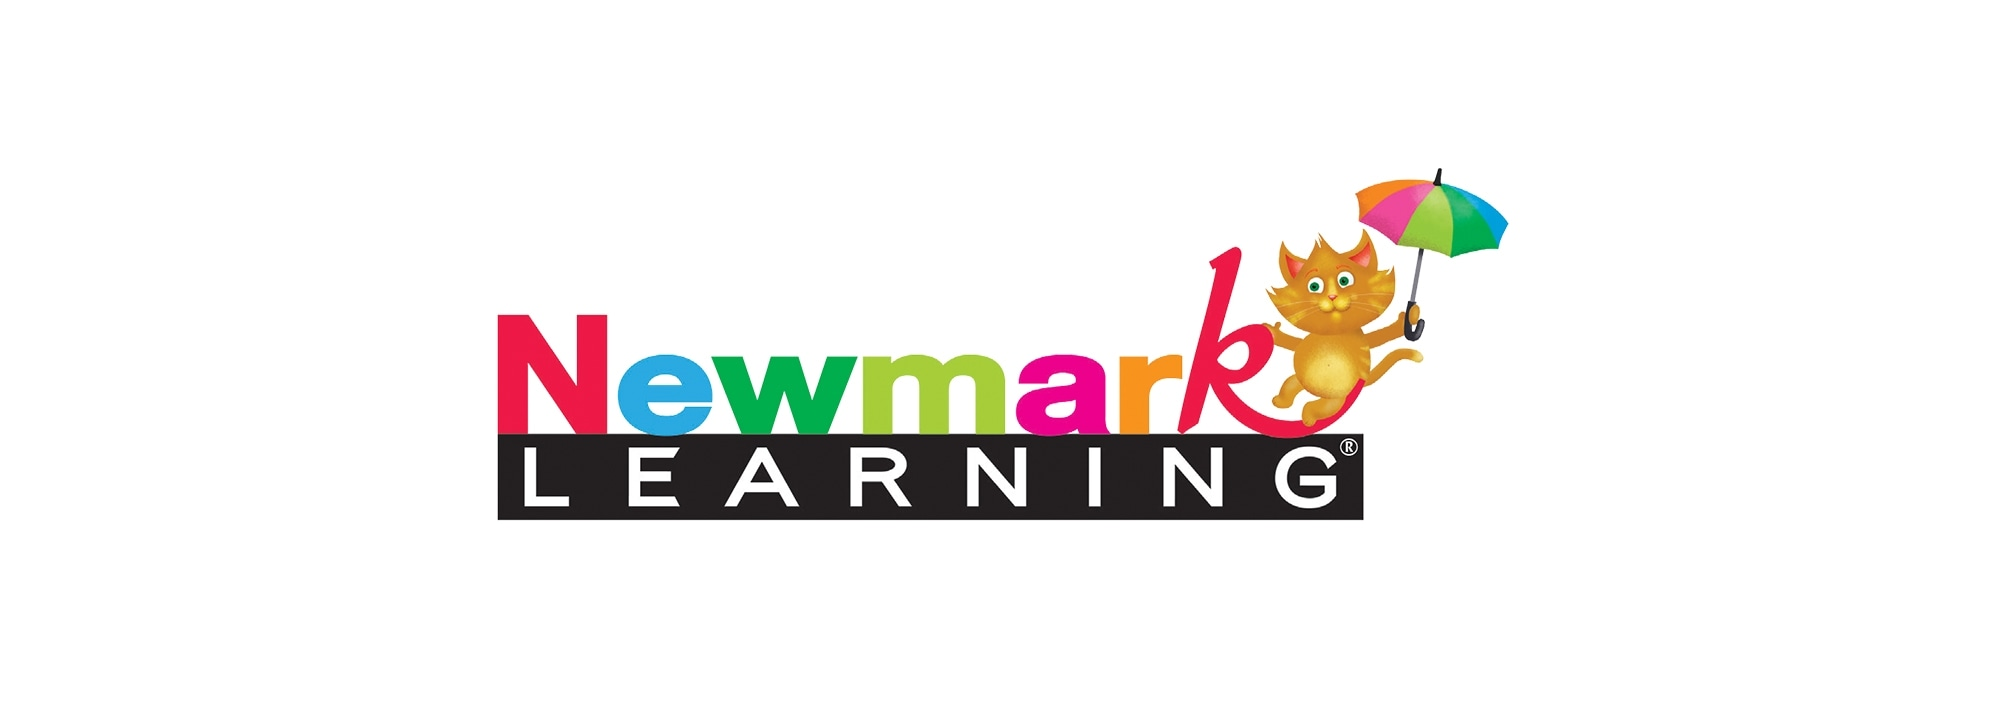 Newmark Learning promo codes